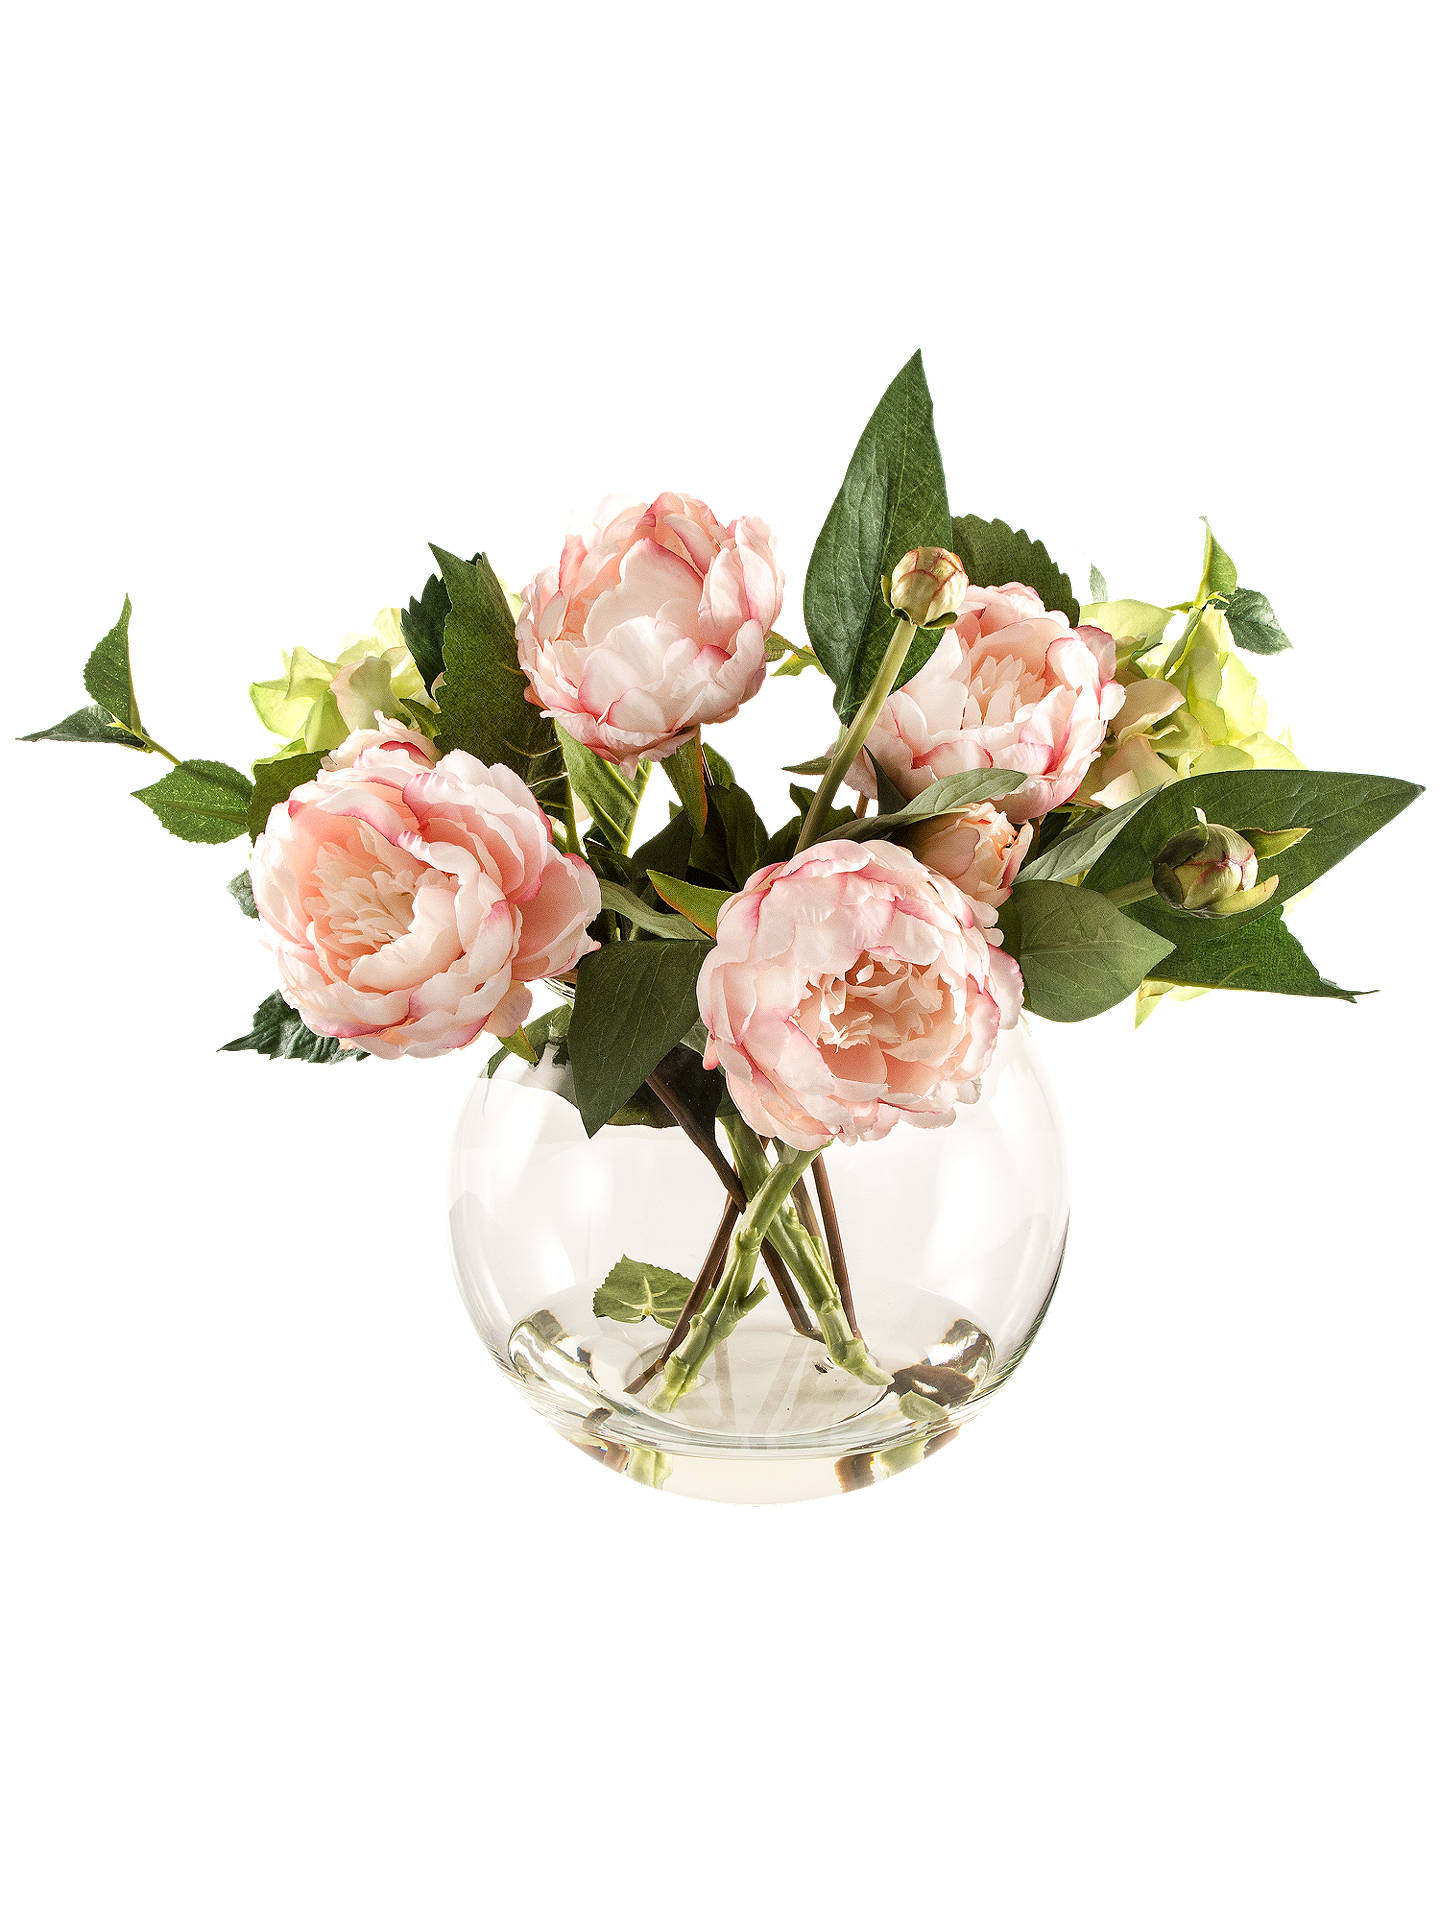 BuyArtificial Peony Dark Pink Peonies in Fish Bowl Vase Online at johnlewis.com